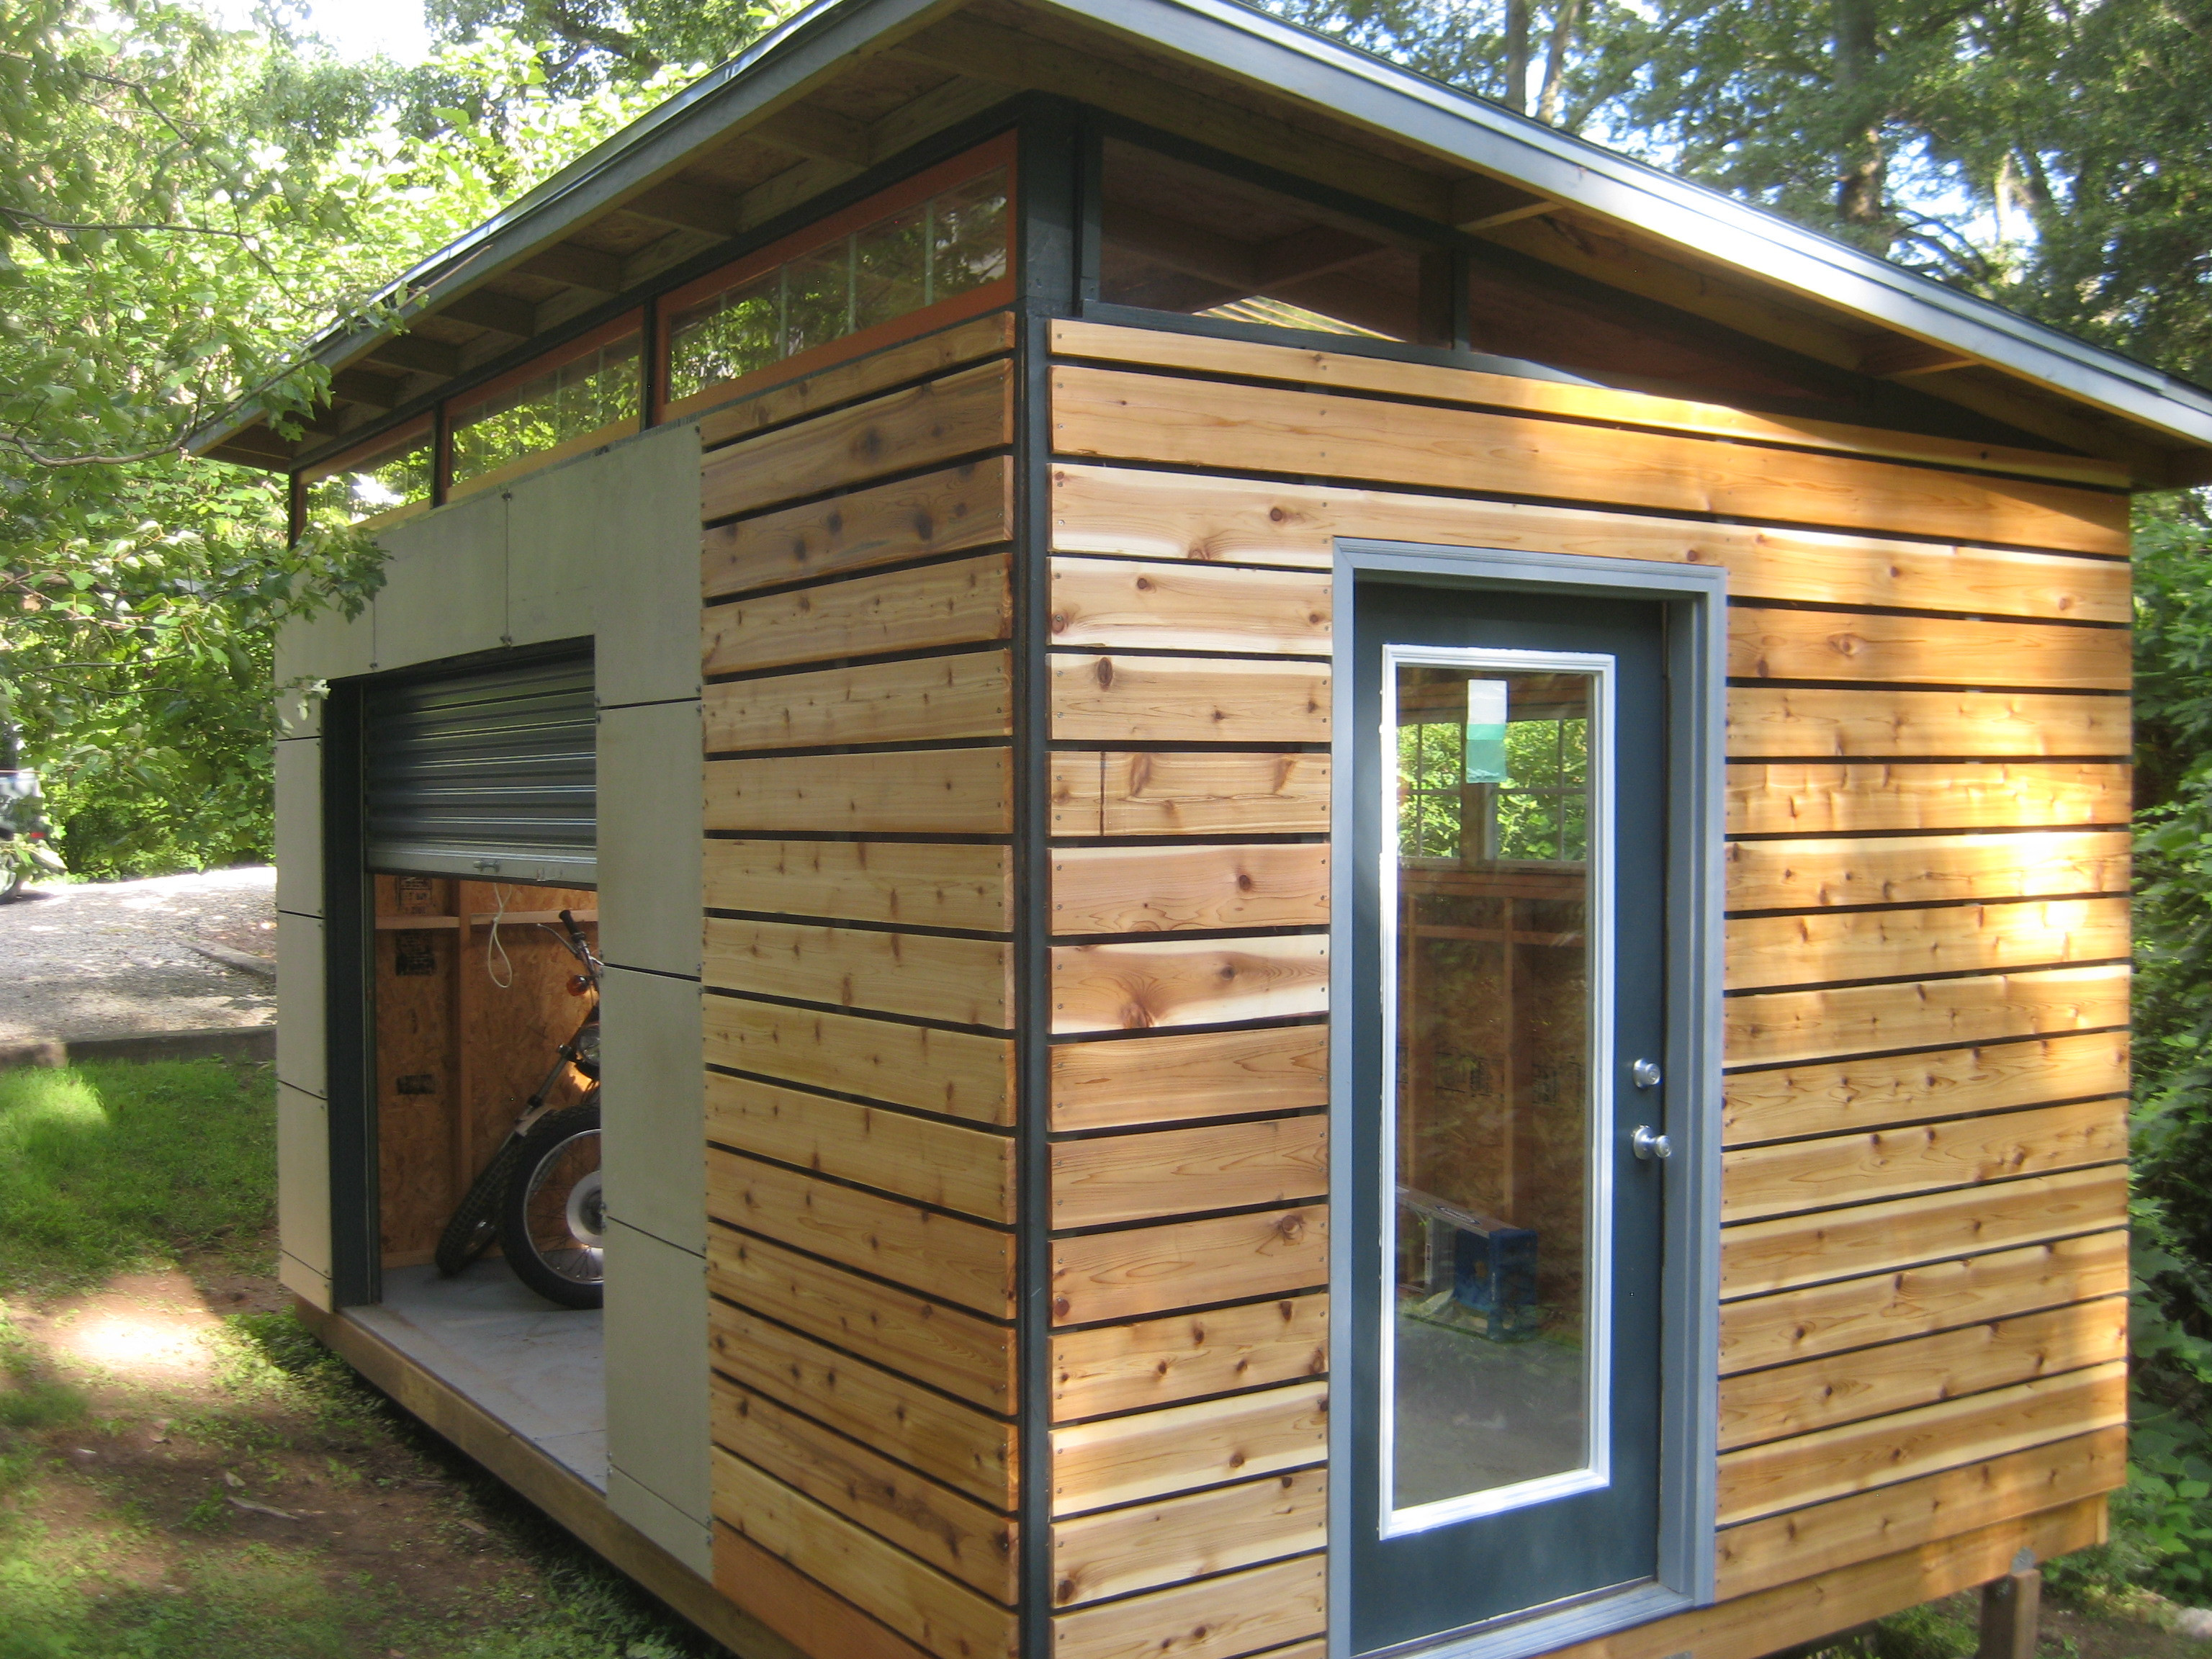 Best ideas about DIY Backyard Sheds . Save or Pin DIY Modern Shed project Now.